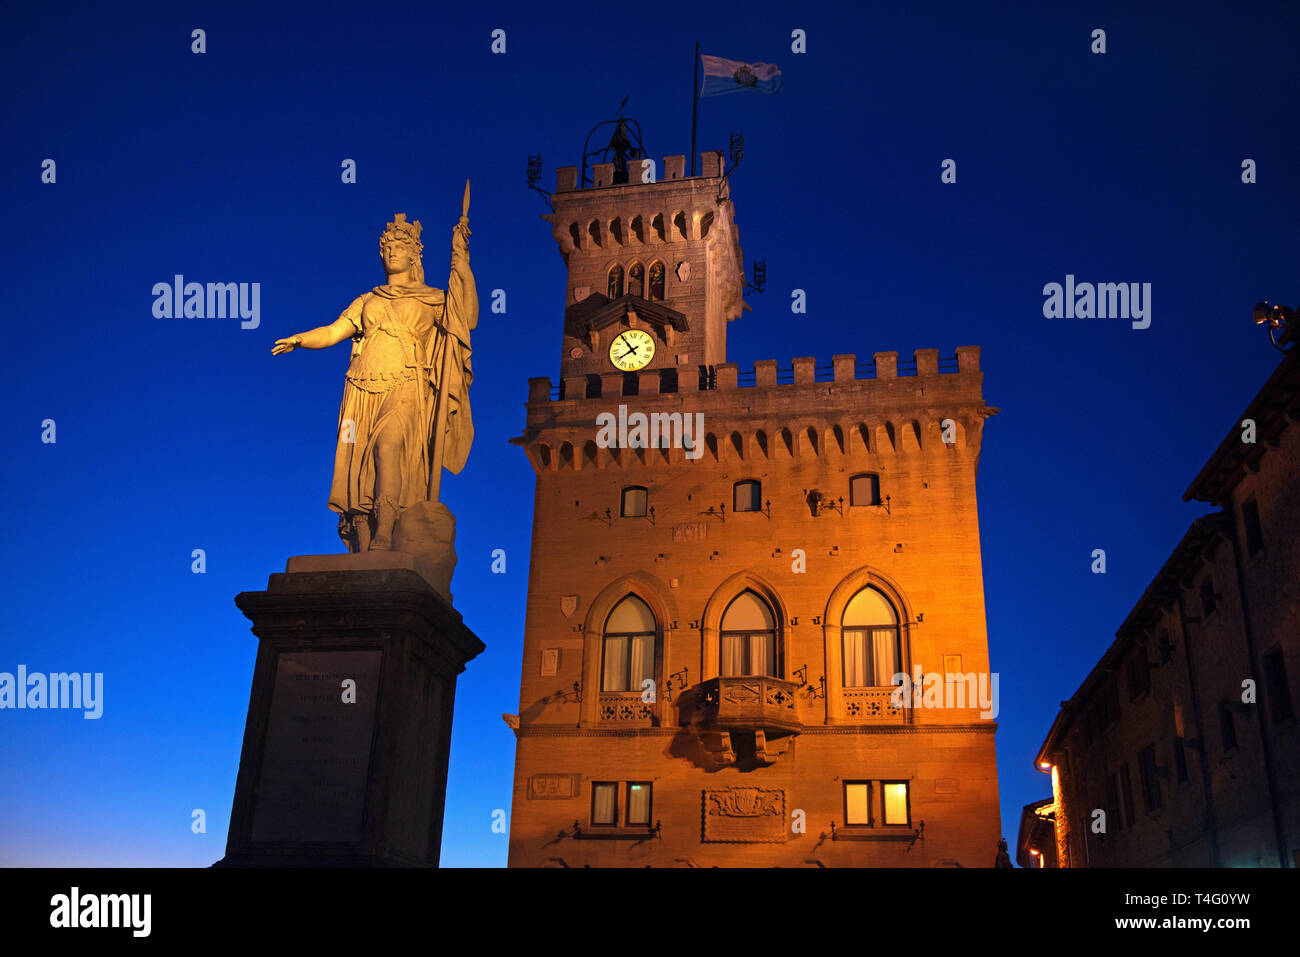 The Palazzo Pubblico, seat of the government of San Marino and the Statue of Liberty - Stock Image